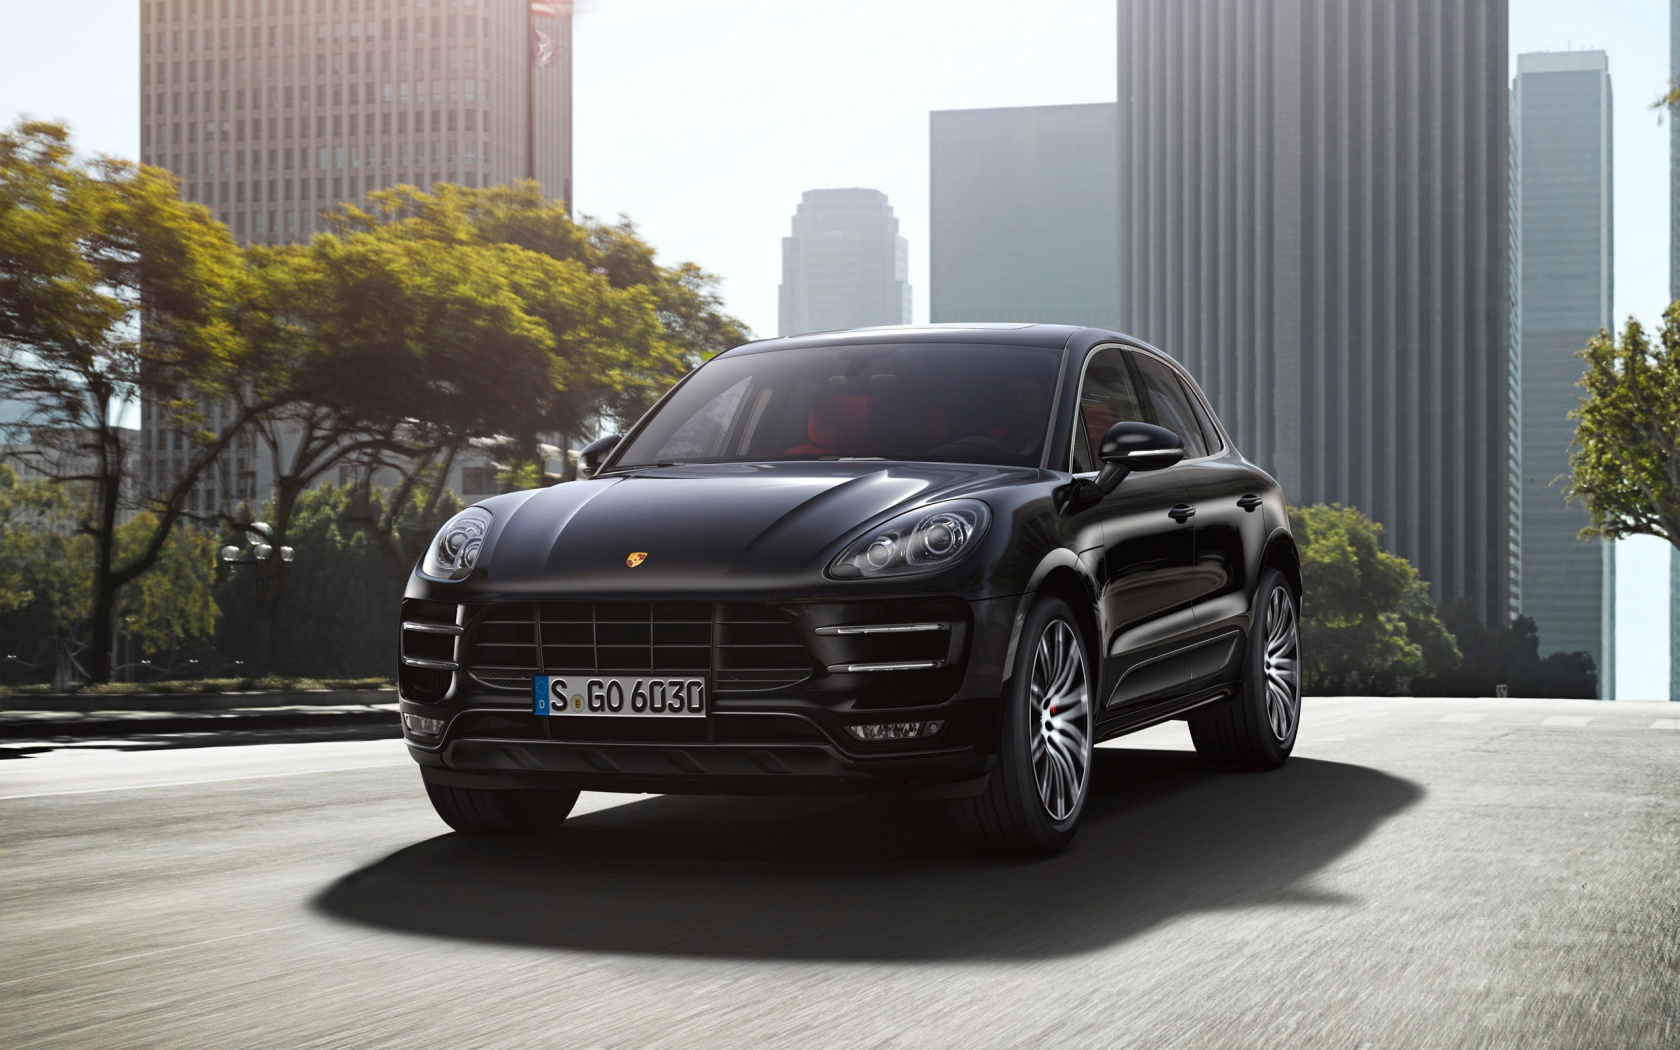 Porsche Macan Turbo 26 Car Background